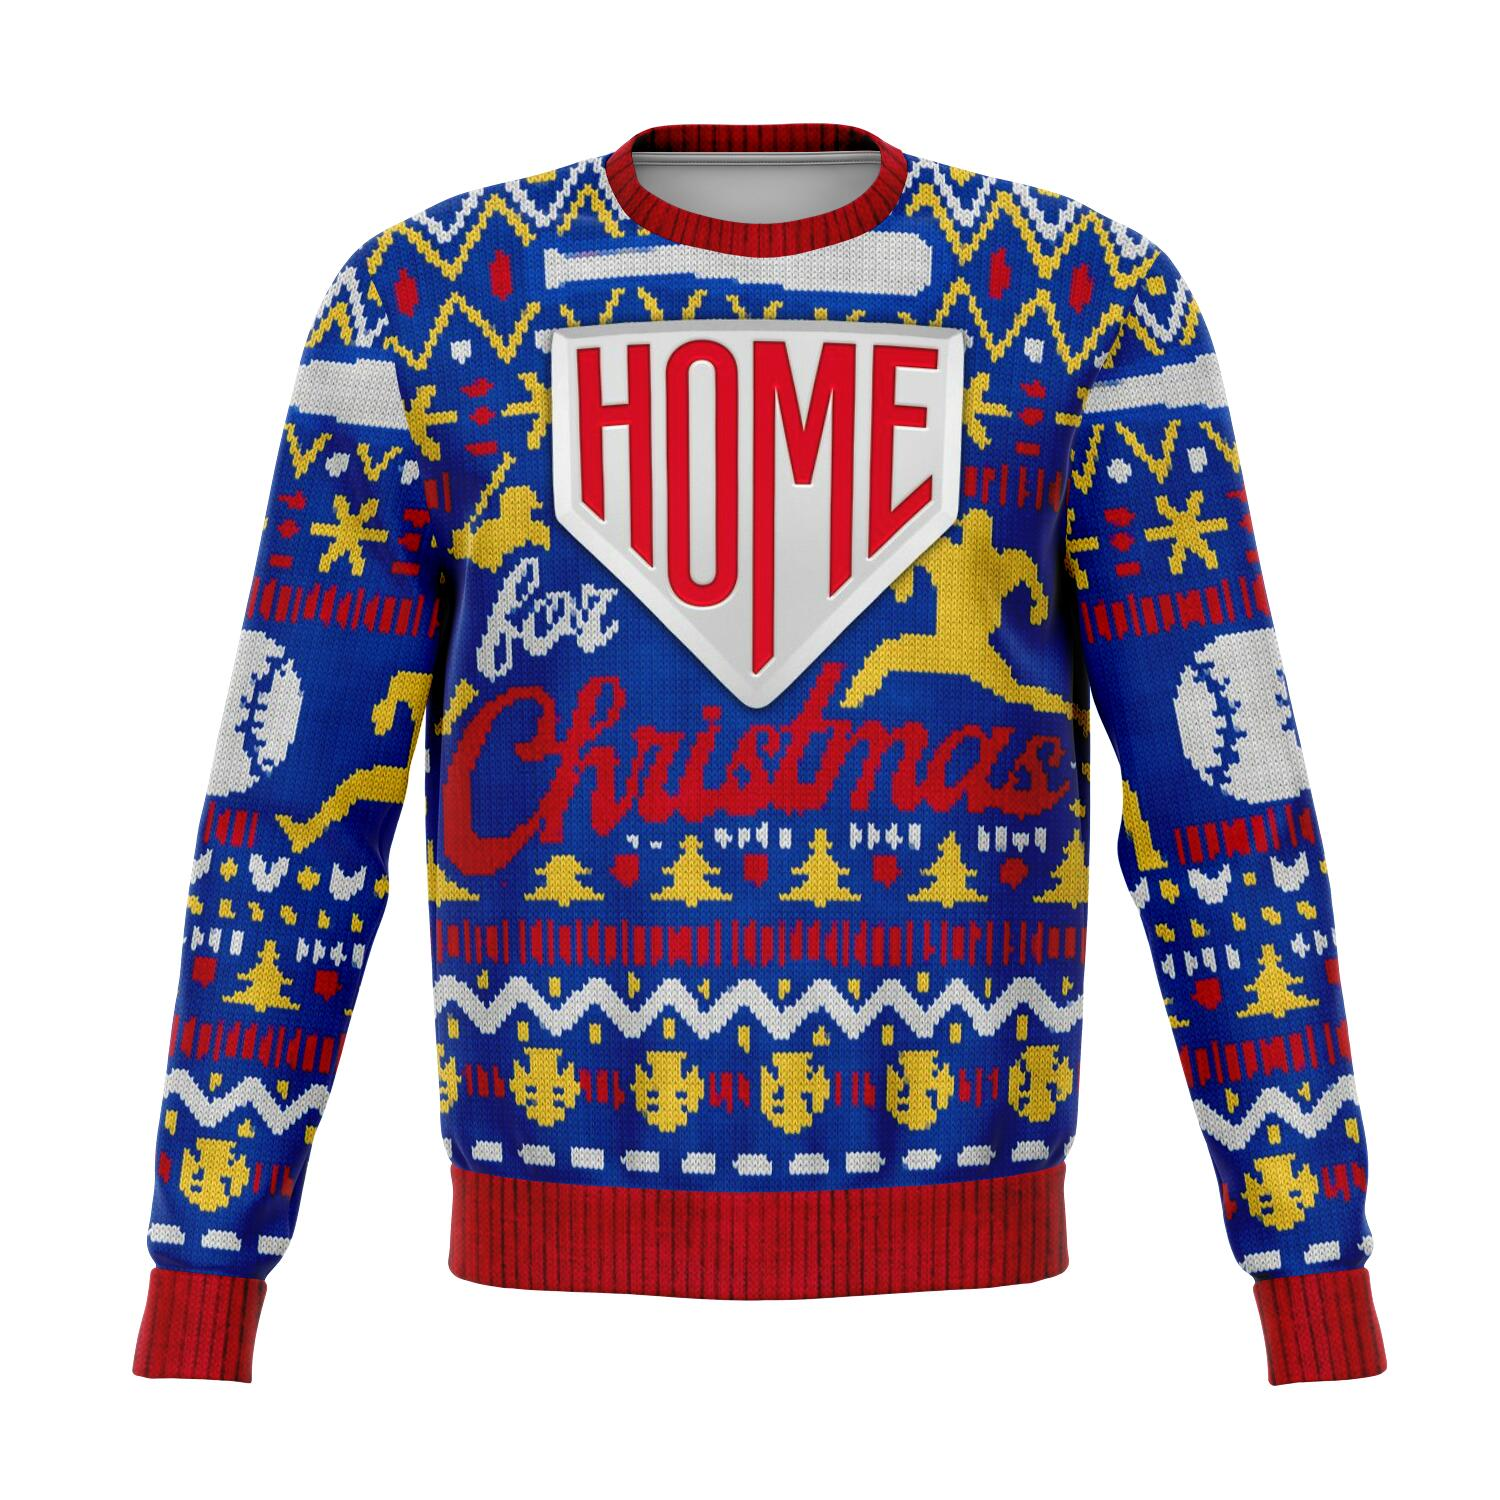 Home For Christmas - Sweatshirt